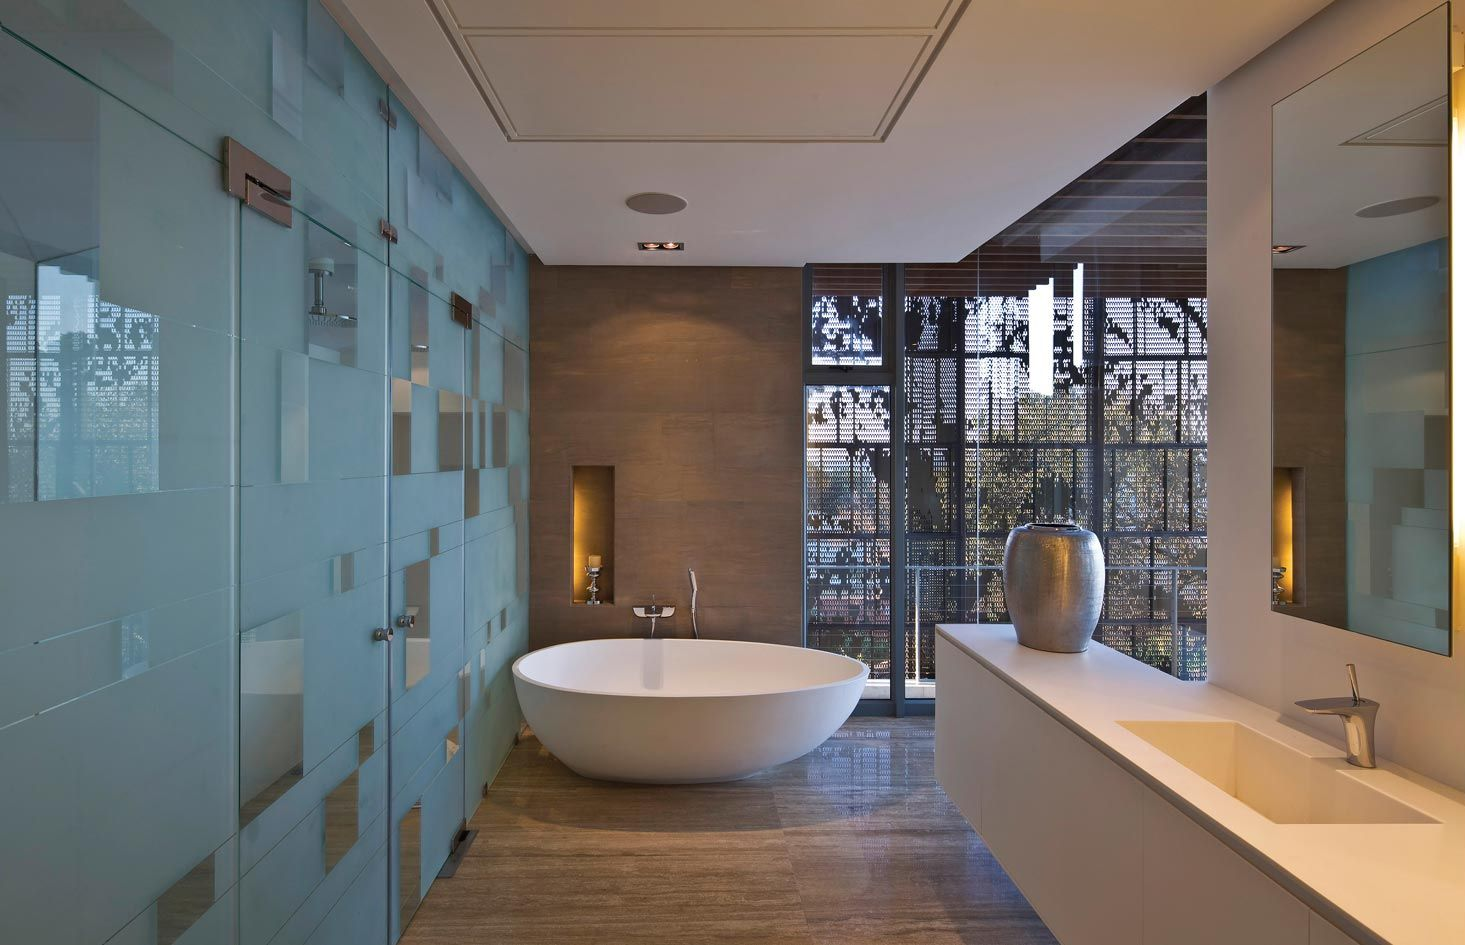 Home interiors bathroom - Home Interiors Bathroom Design